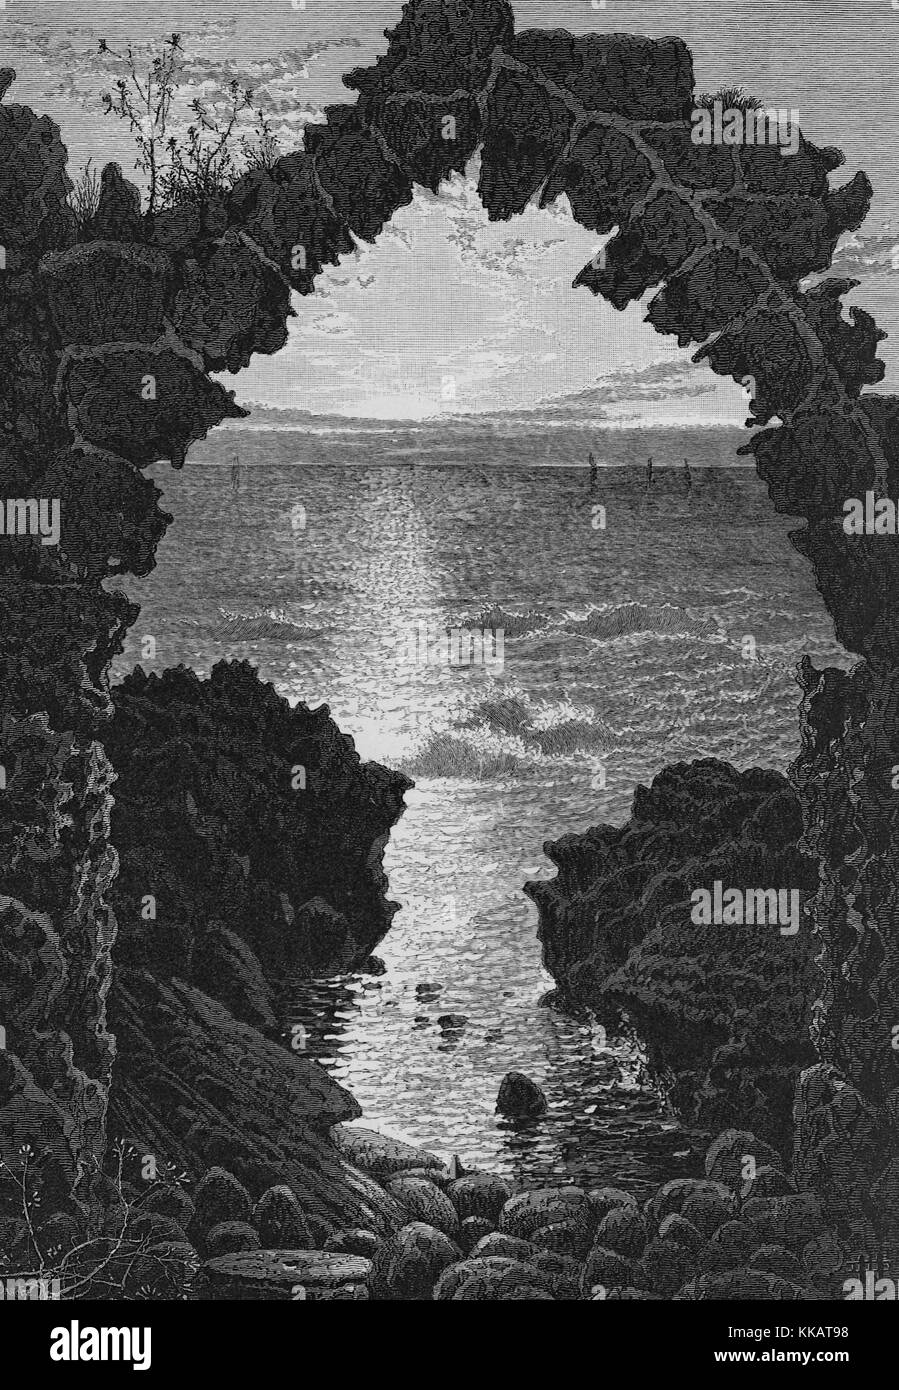 An engraving depicting a view of the Mediterranean Sea as seen from the town of Atlit, the arch in the print is - Stock Image